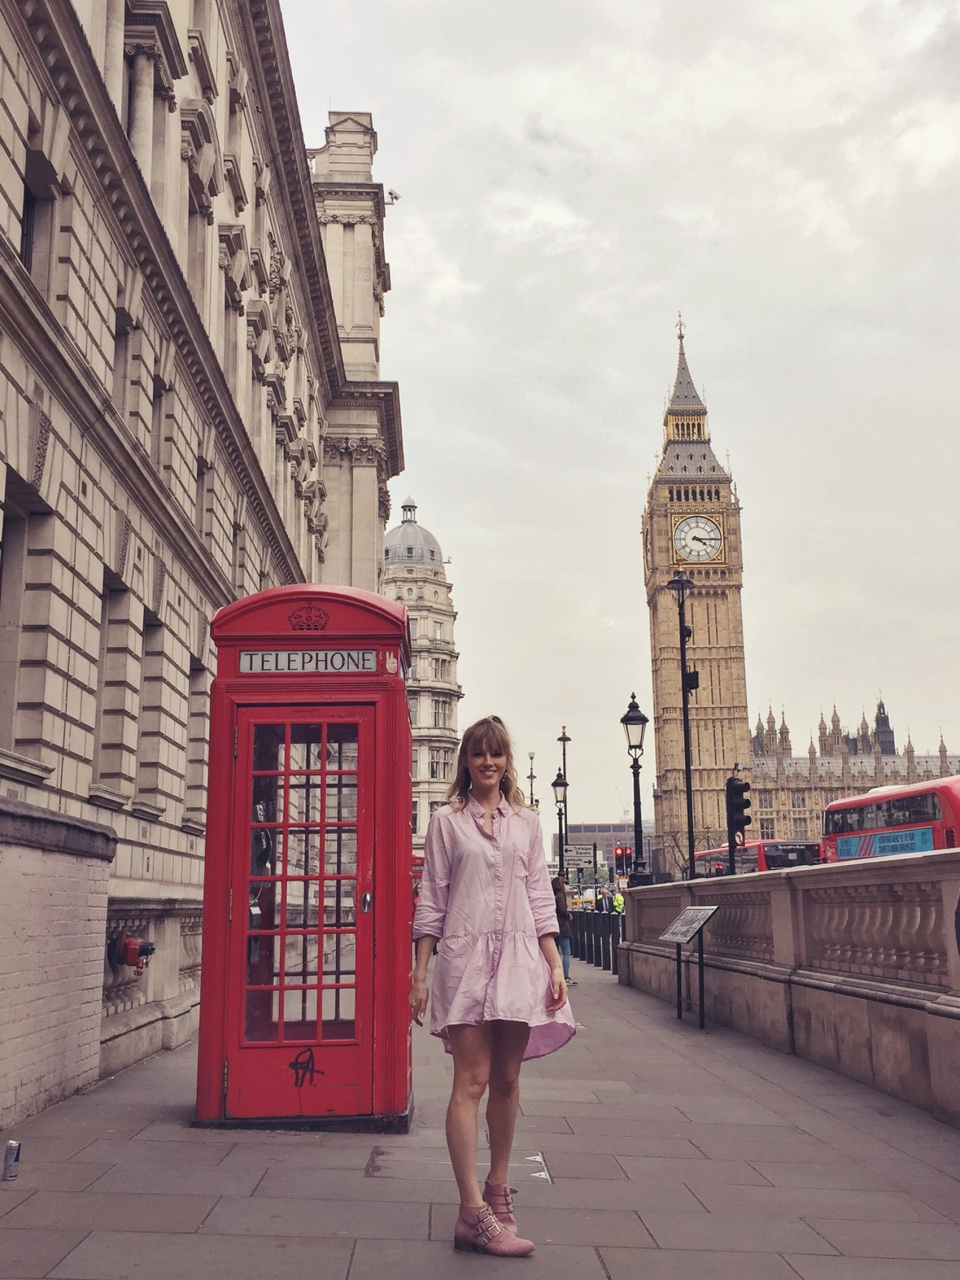 big ben, london, travel, england, uk, instagram, tipps, hacks